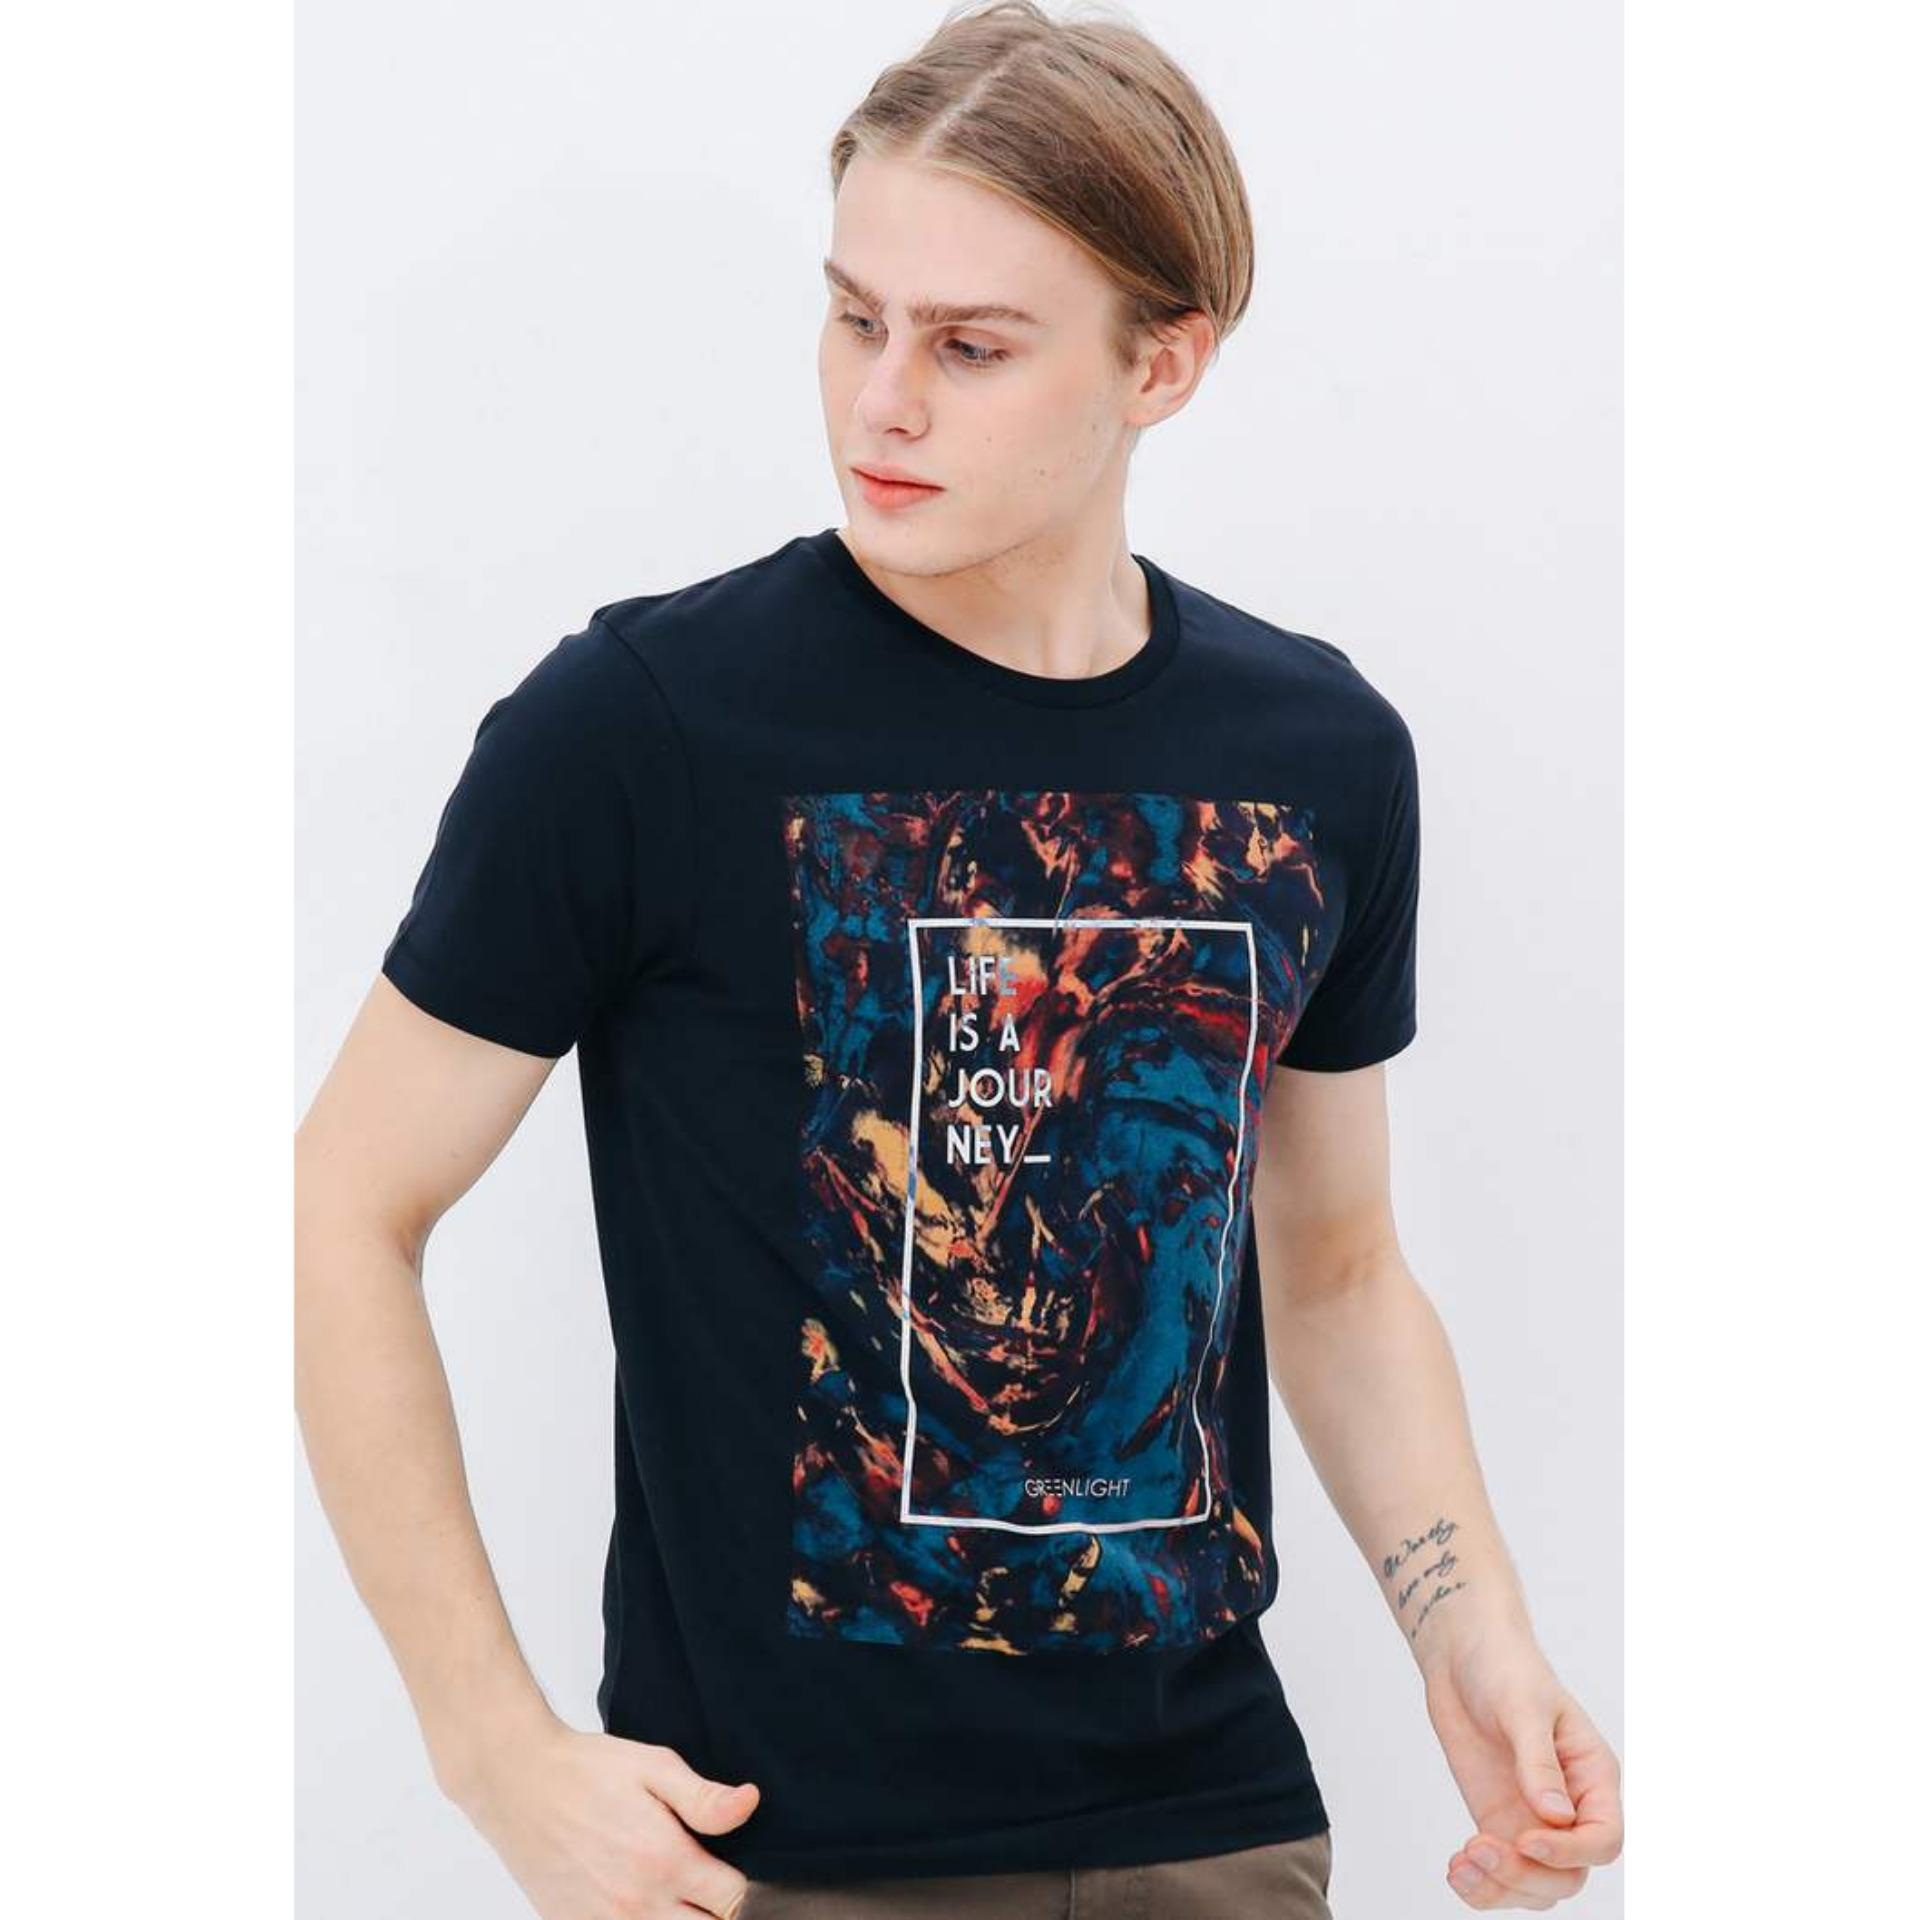 Toko Greenlight Mens Tshirt 6812 Greenlight Online